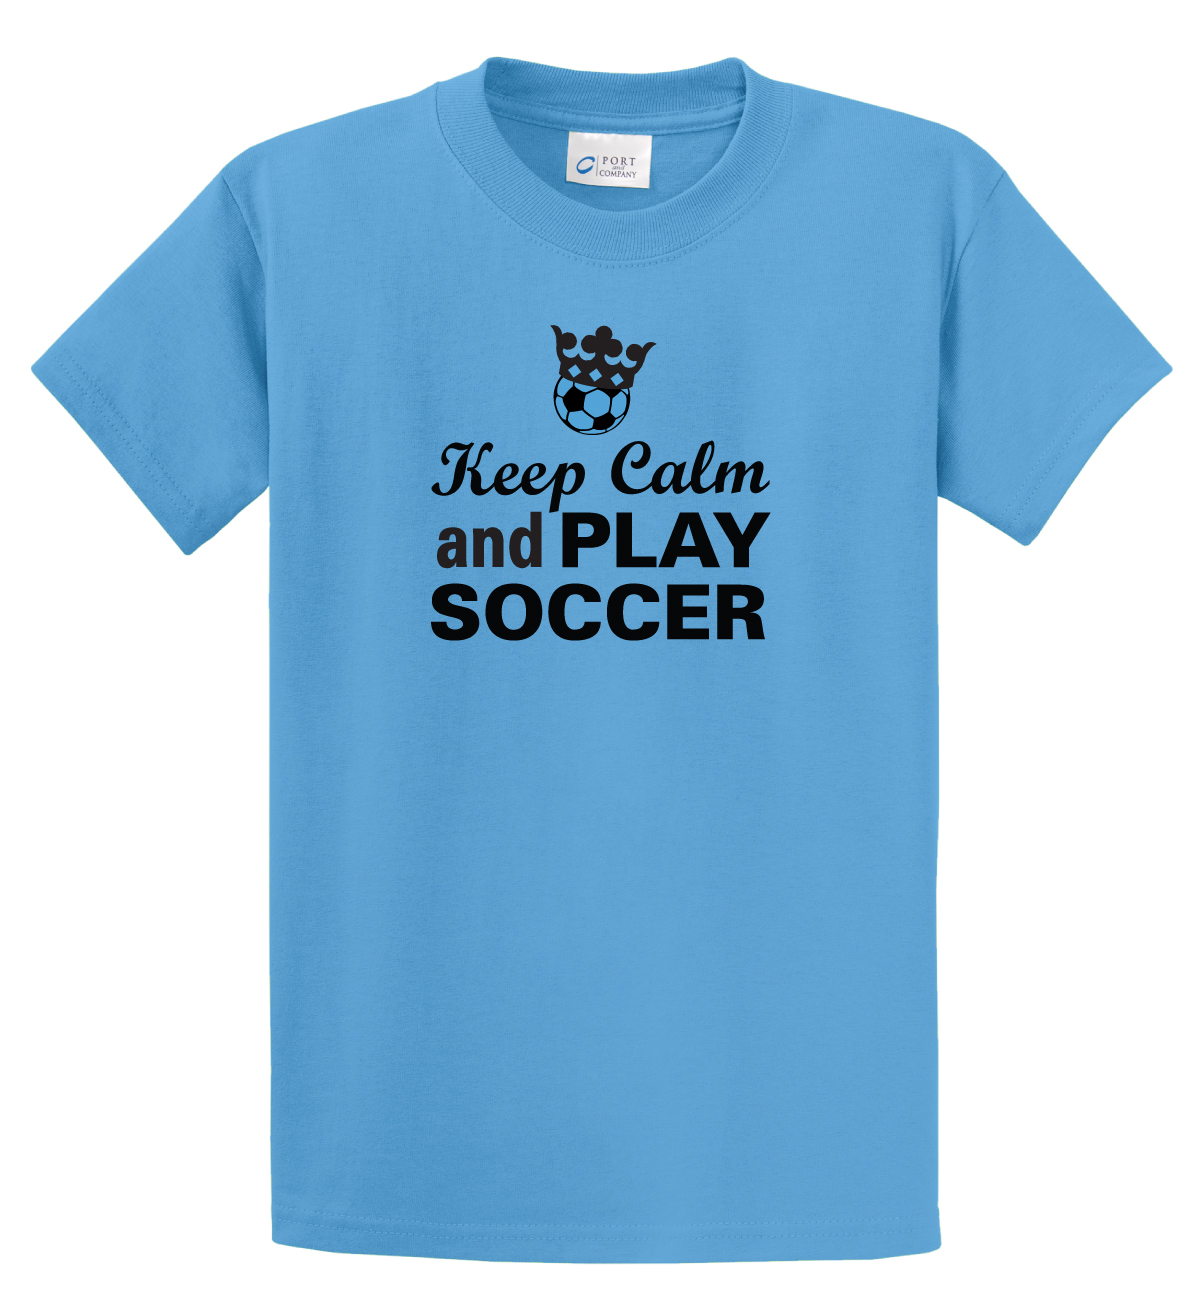 Keep Calm and play soccer aqua blue